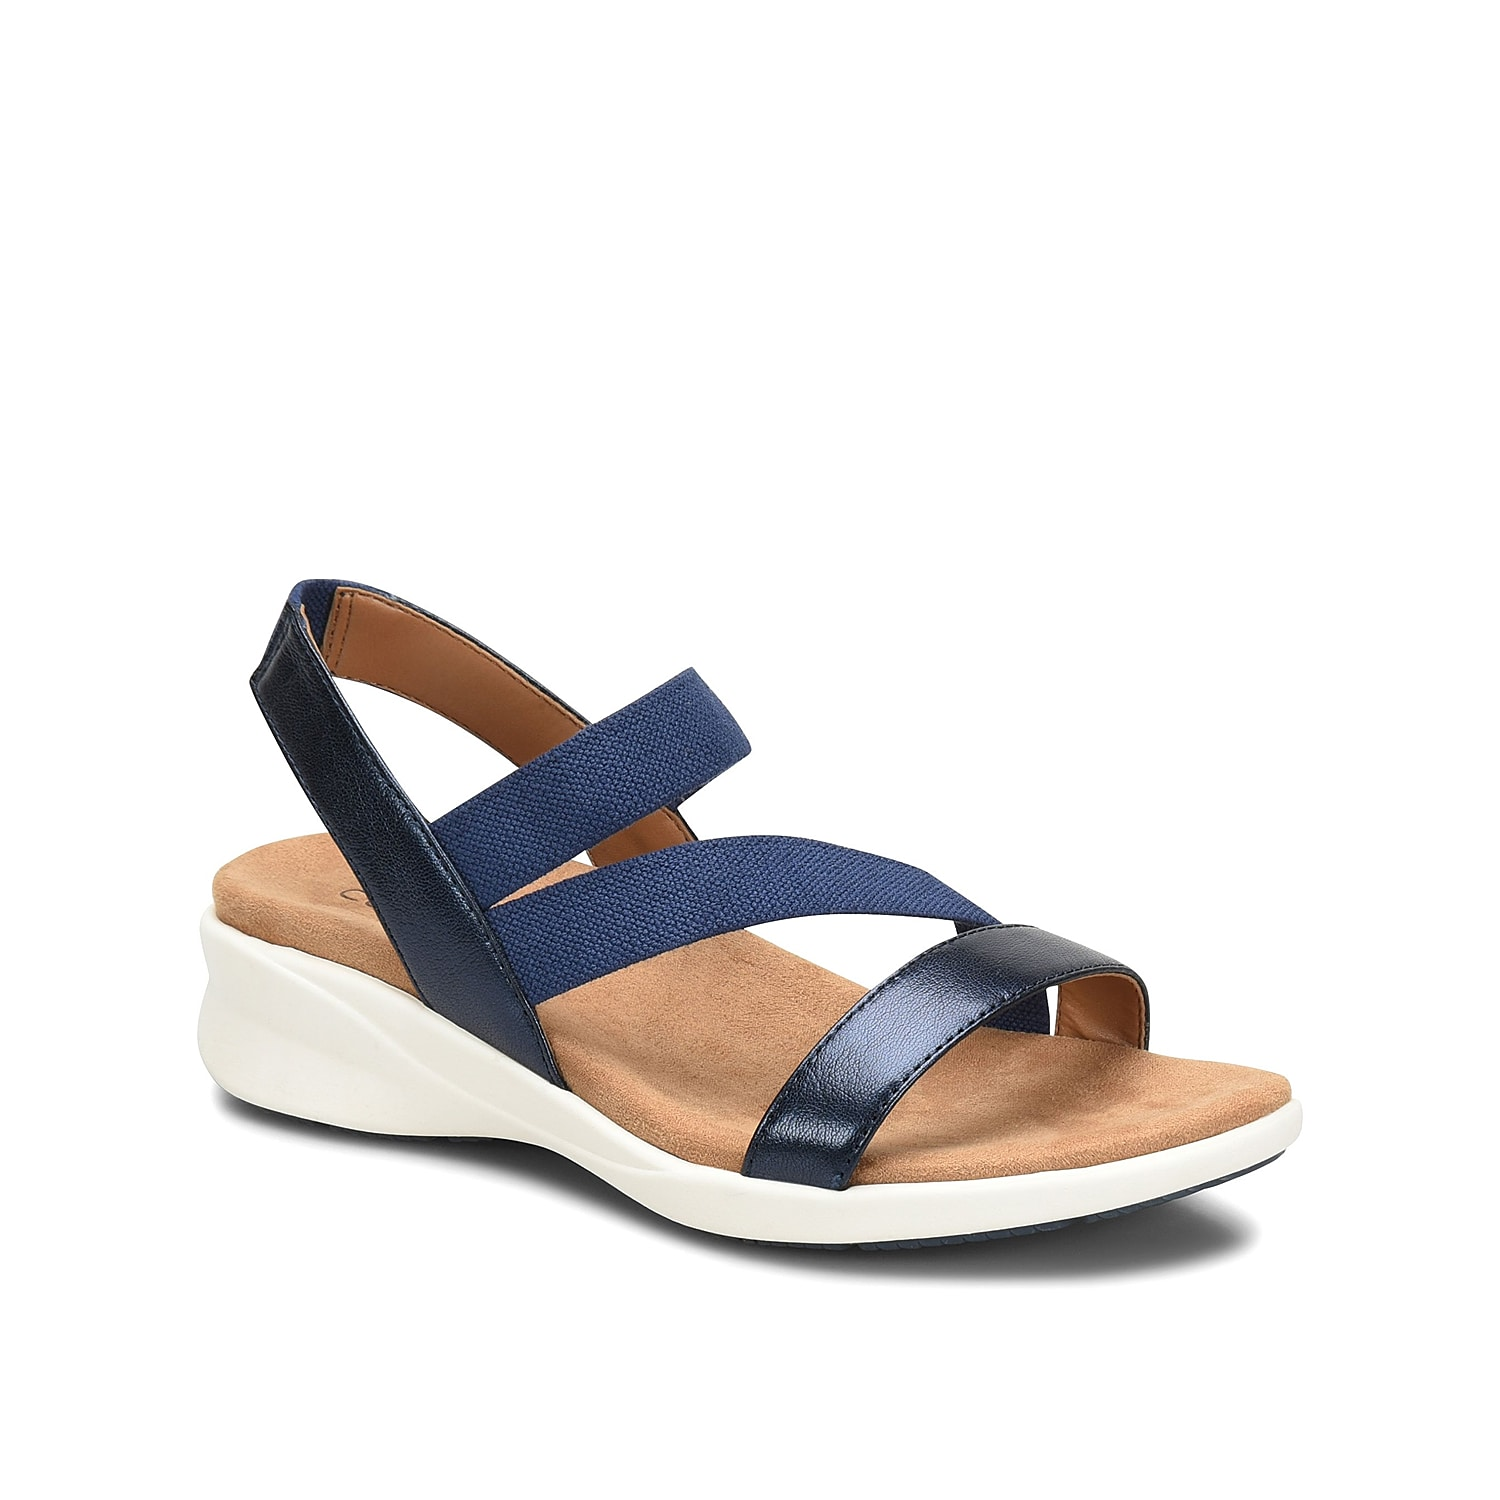 Don\\\'t underestimate the classic look of the Tayla wedge sandal from Comfortiva. This leather pair is fashioned with an elastic front strap and a sporty-inspired design that will give you limitless styling options!